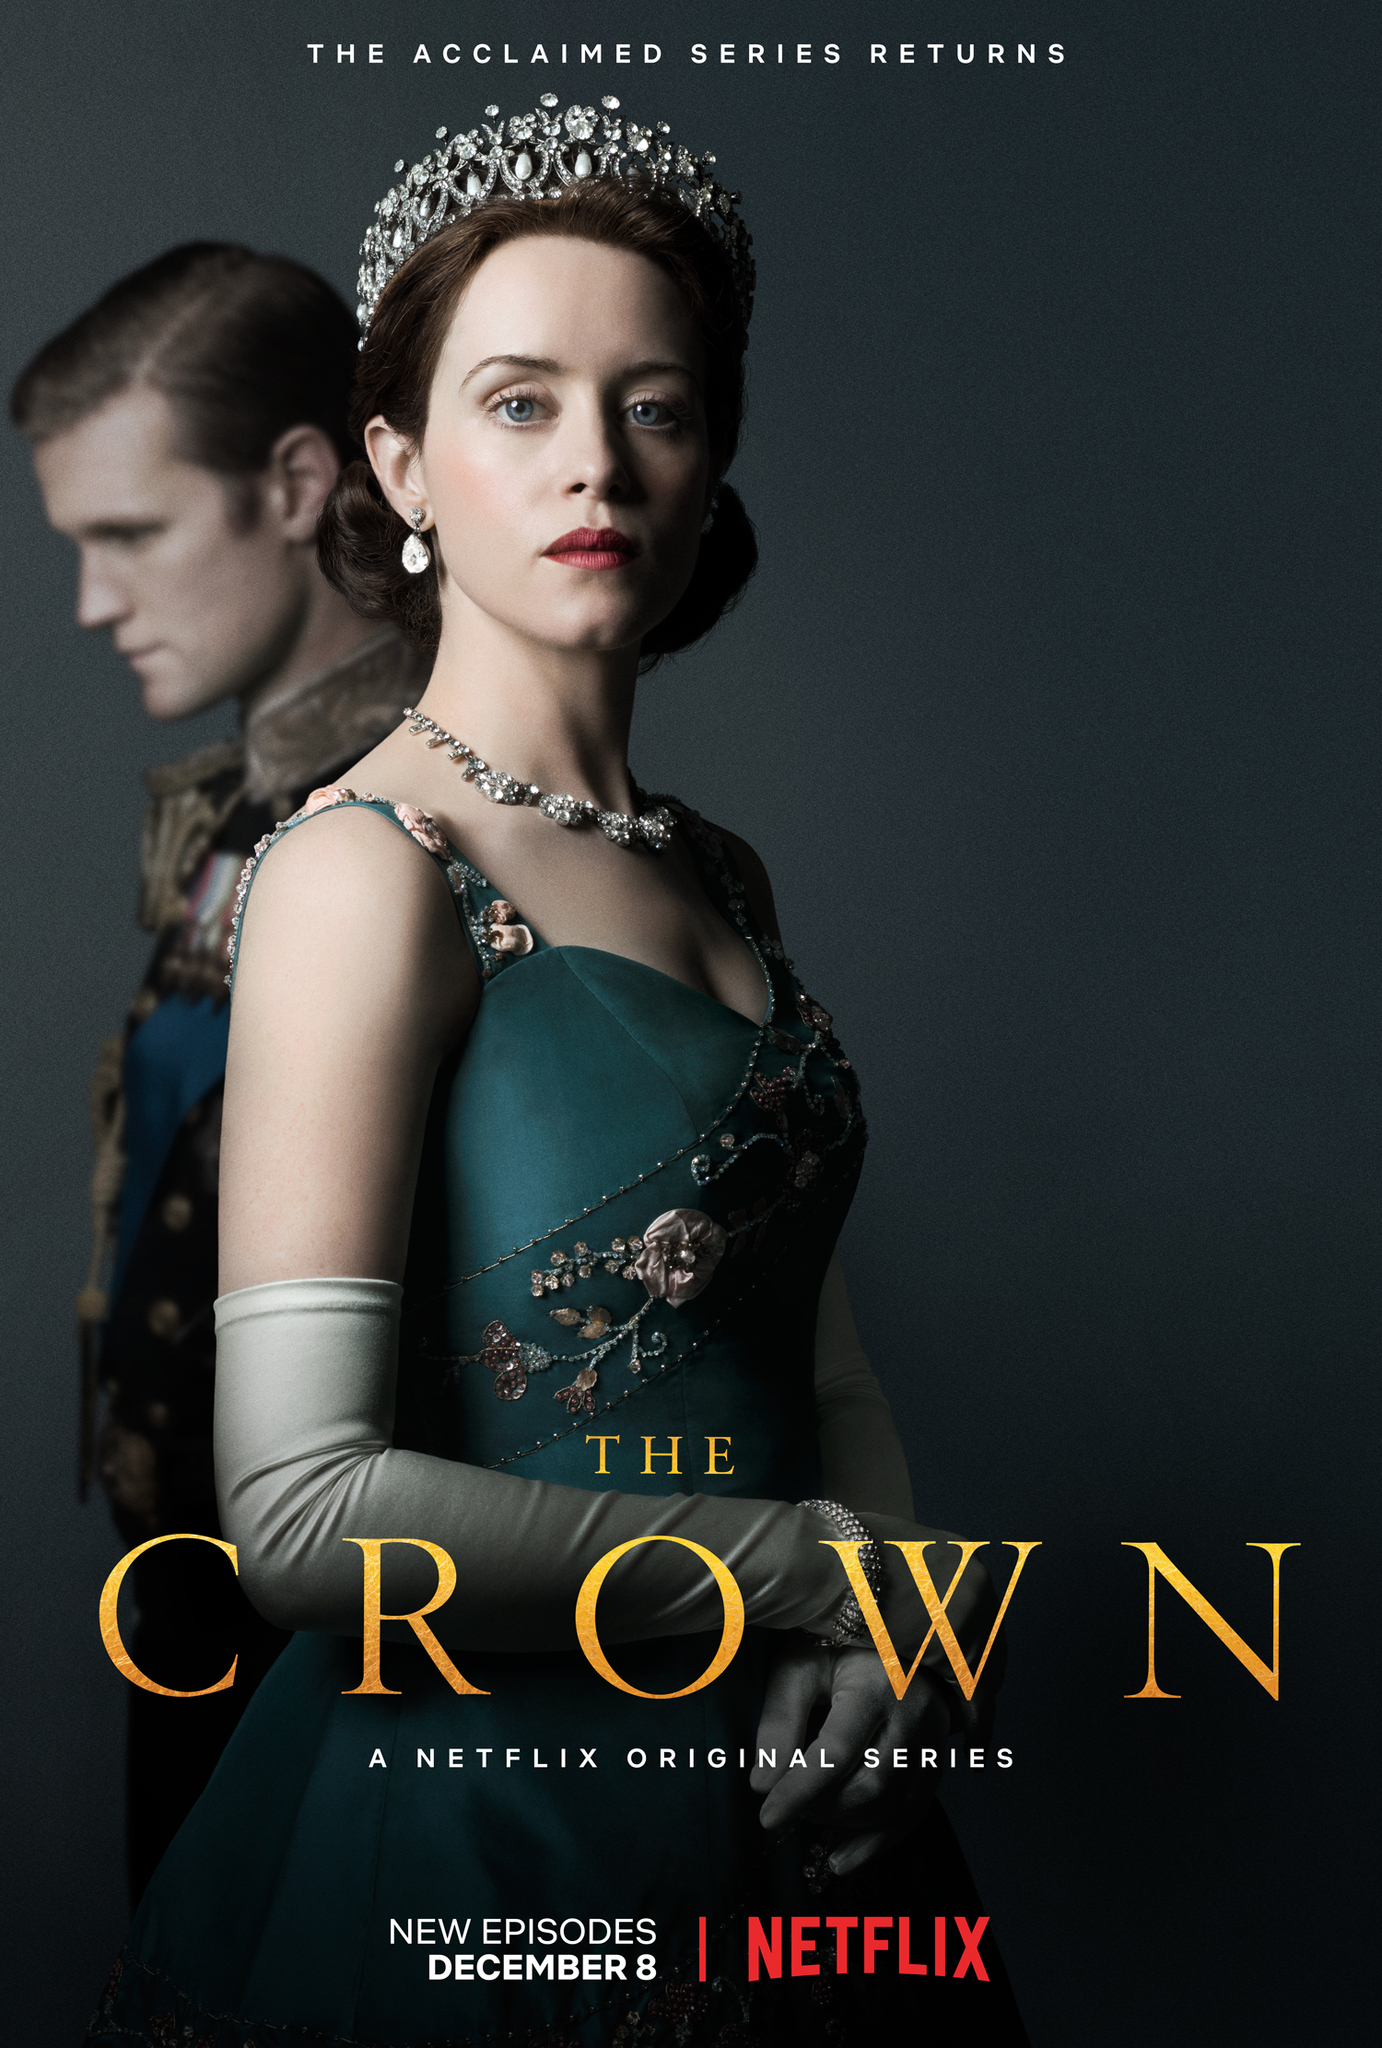 The.Crown.S02E08.iNTERNAL.MULTi.1080p.WEB.x264-CiELOS